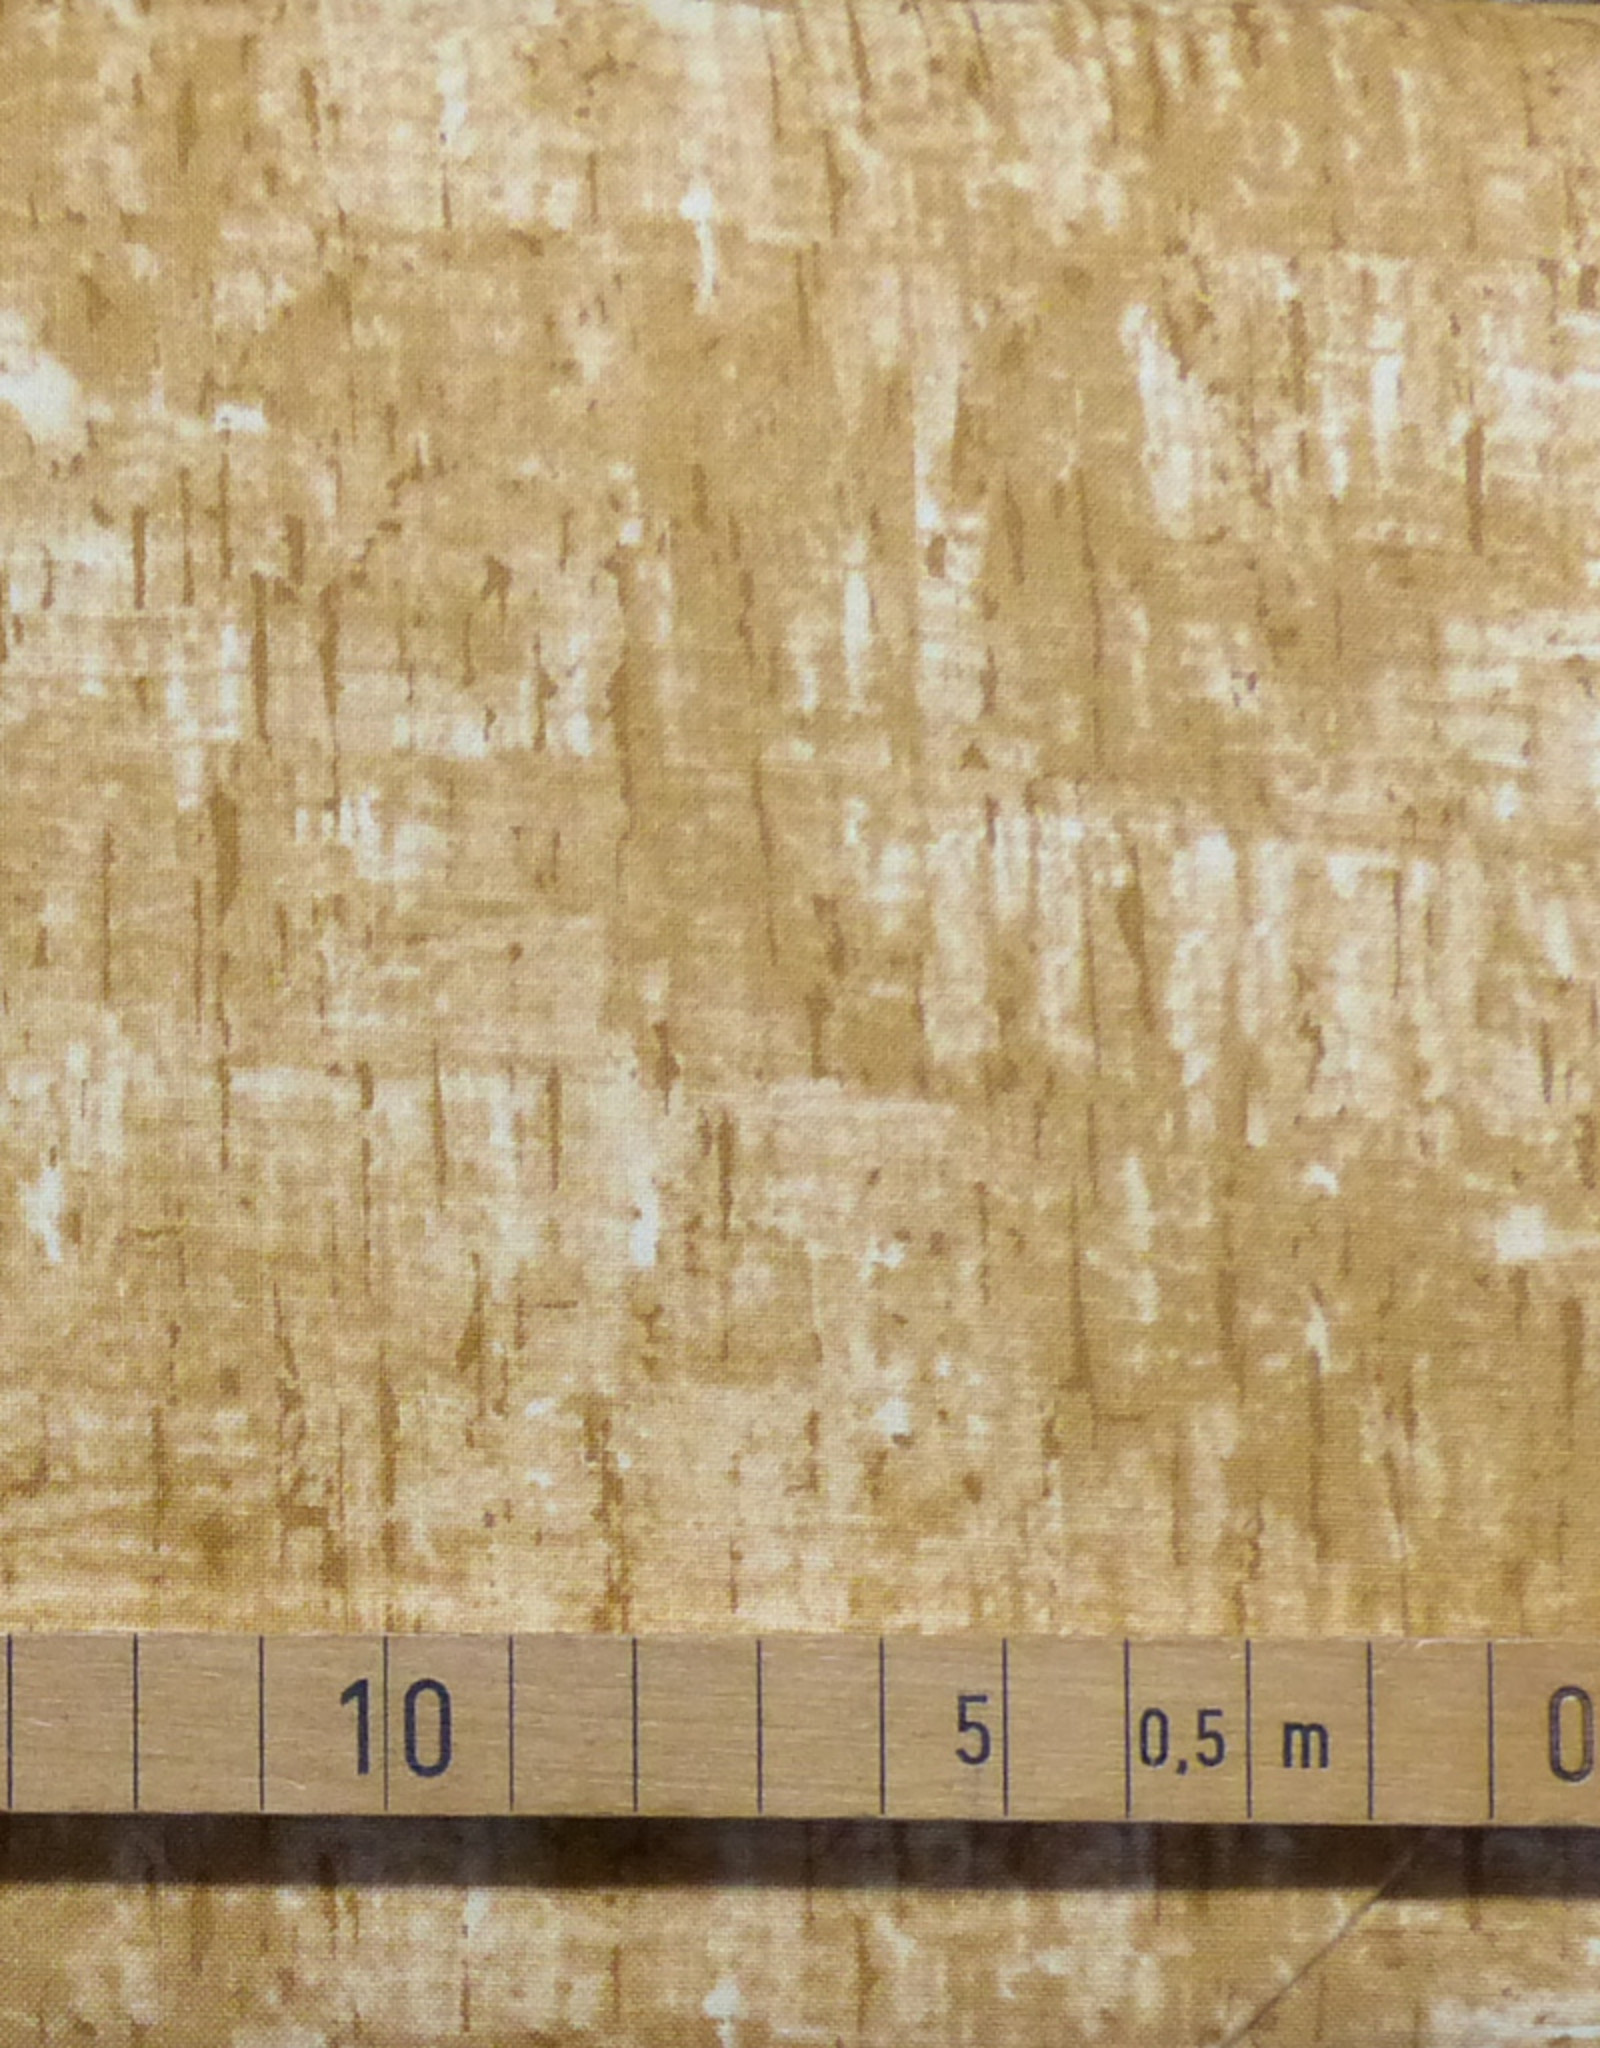 Diverse 10 cm Patt 5473 by Blank Quilting